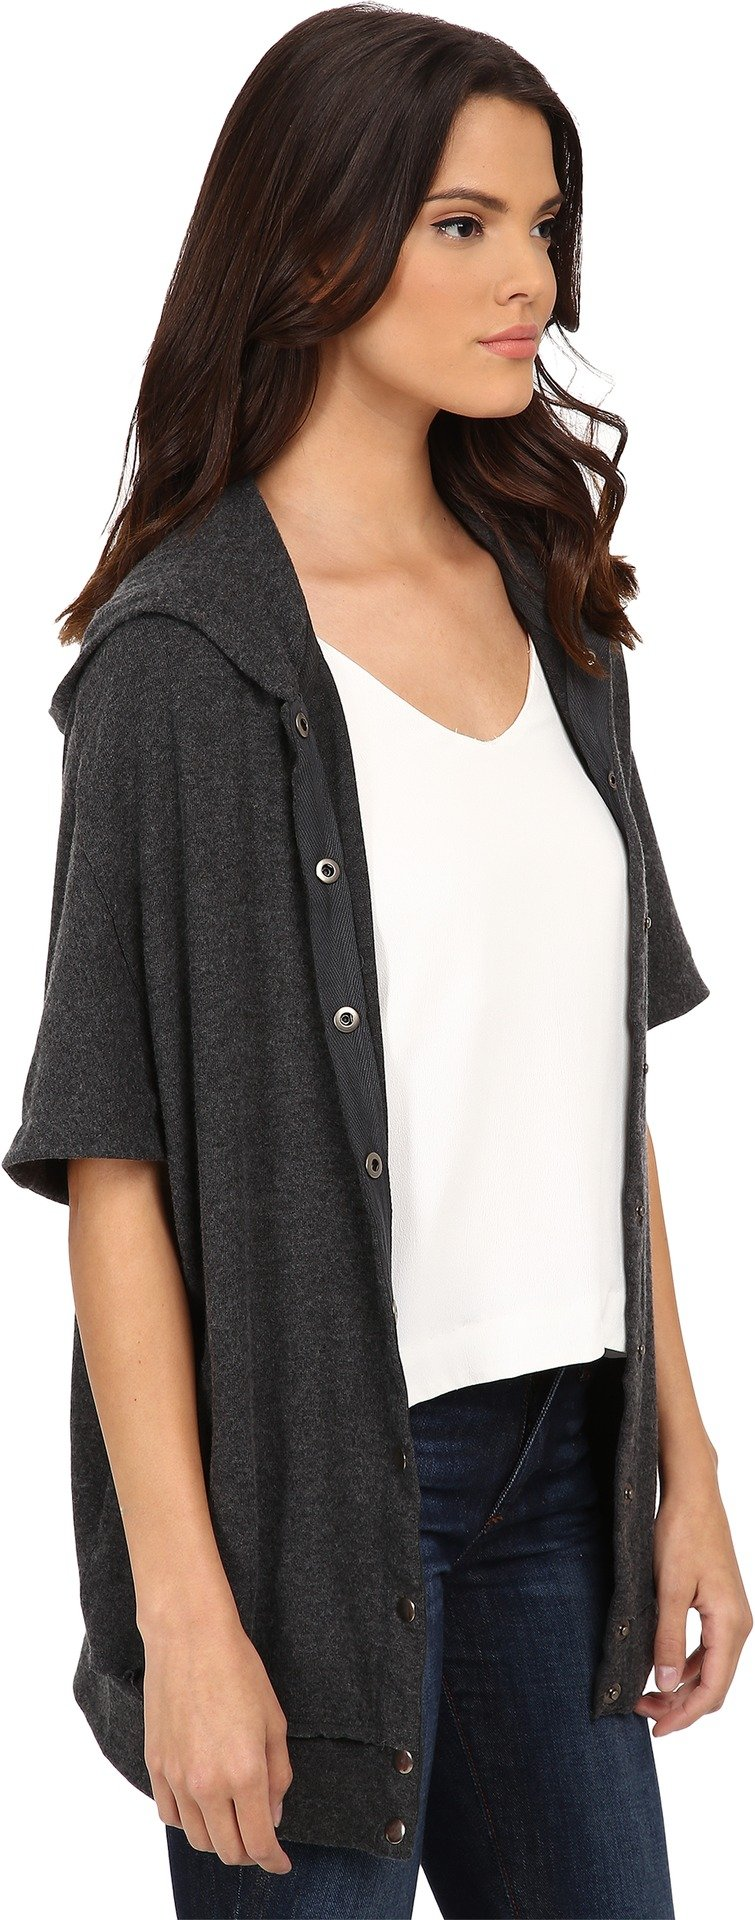 Michael Stars Women's Madison Brushed Jersey Hooded Coat Charcoal Sweater XS (US 0-2) by Michael Stars (Image #2)